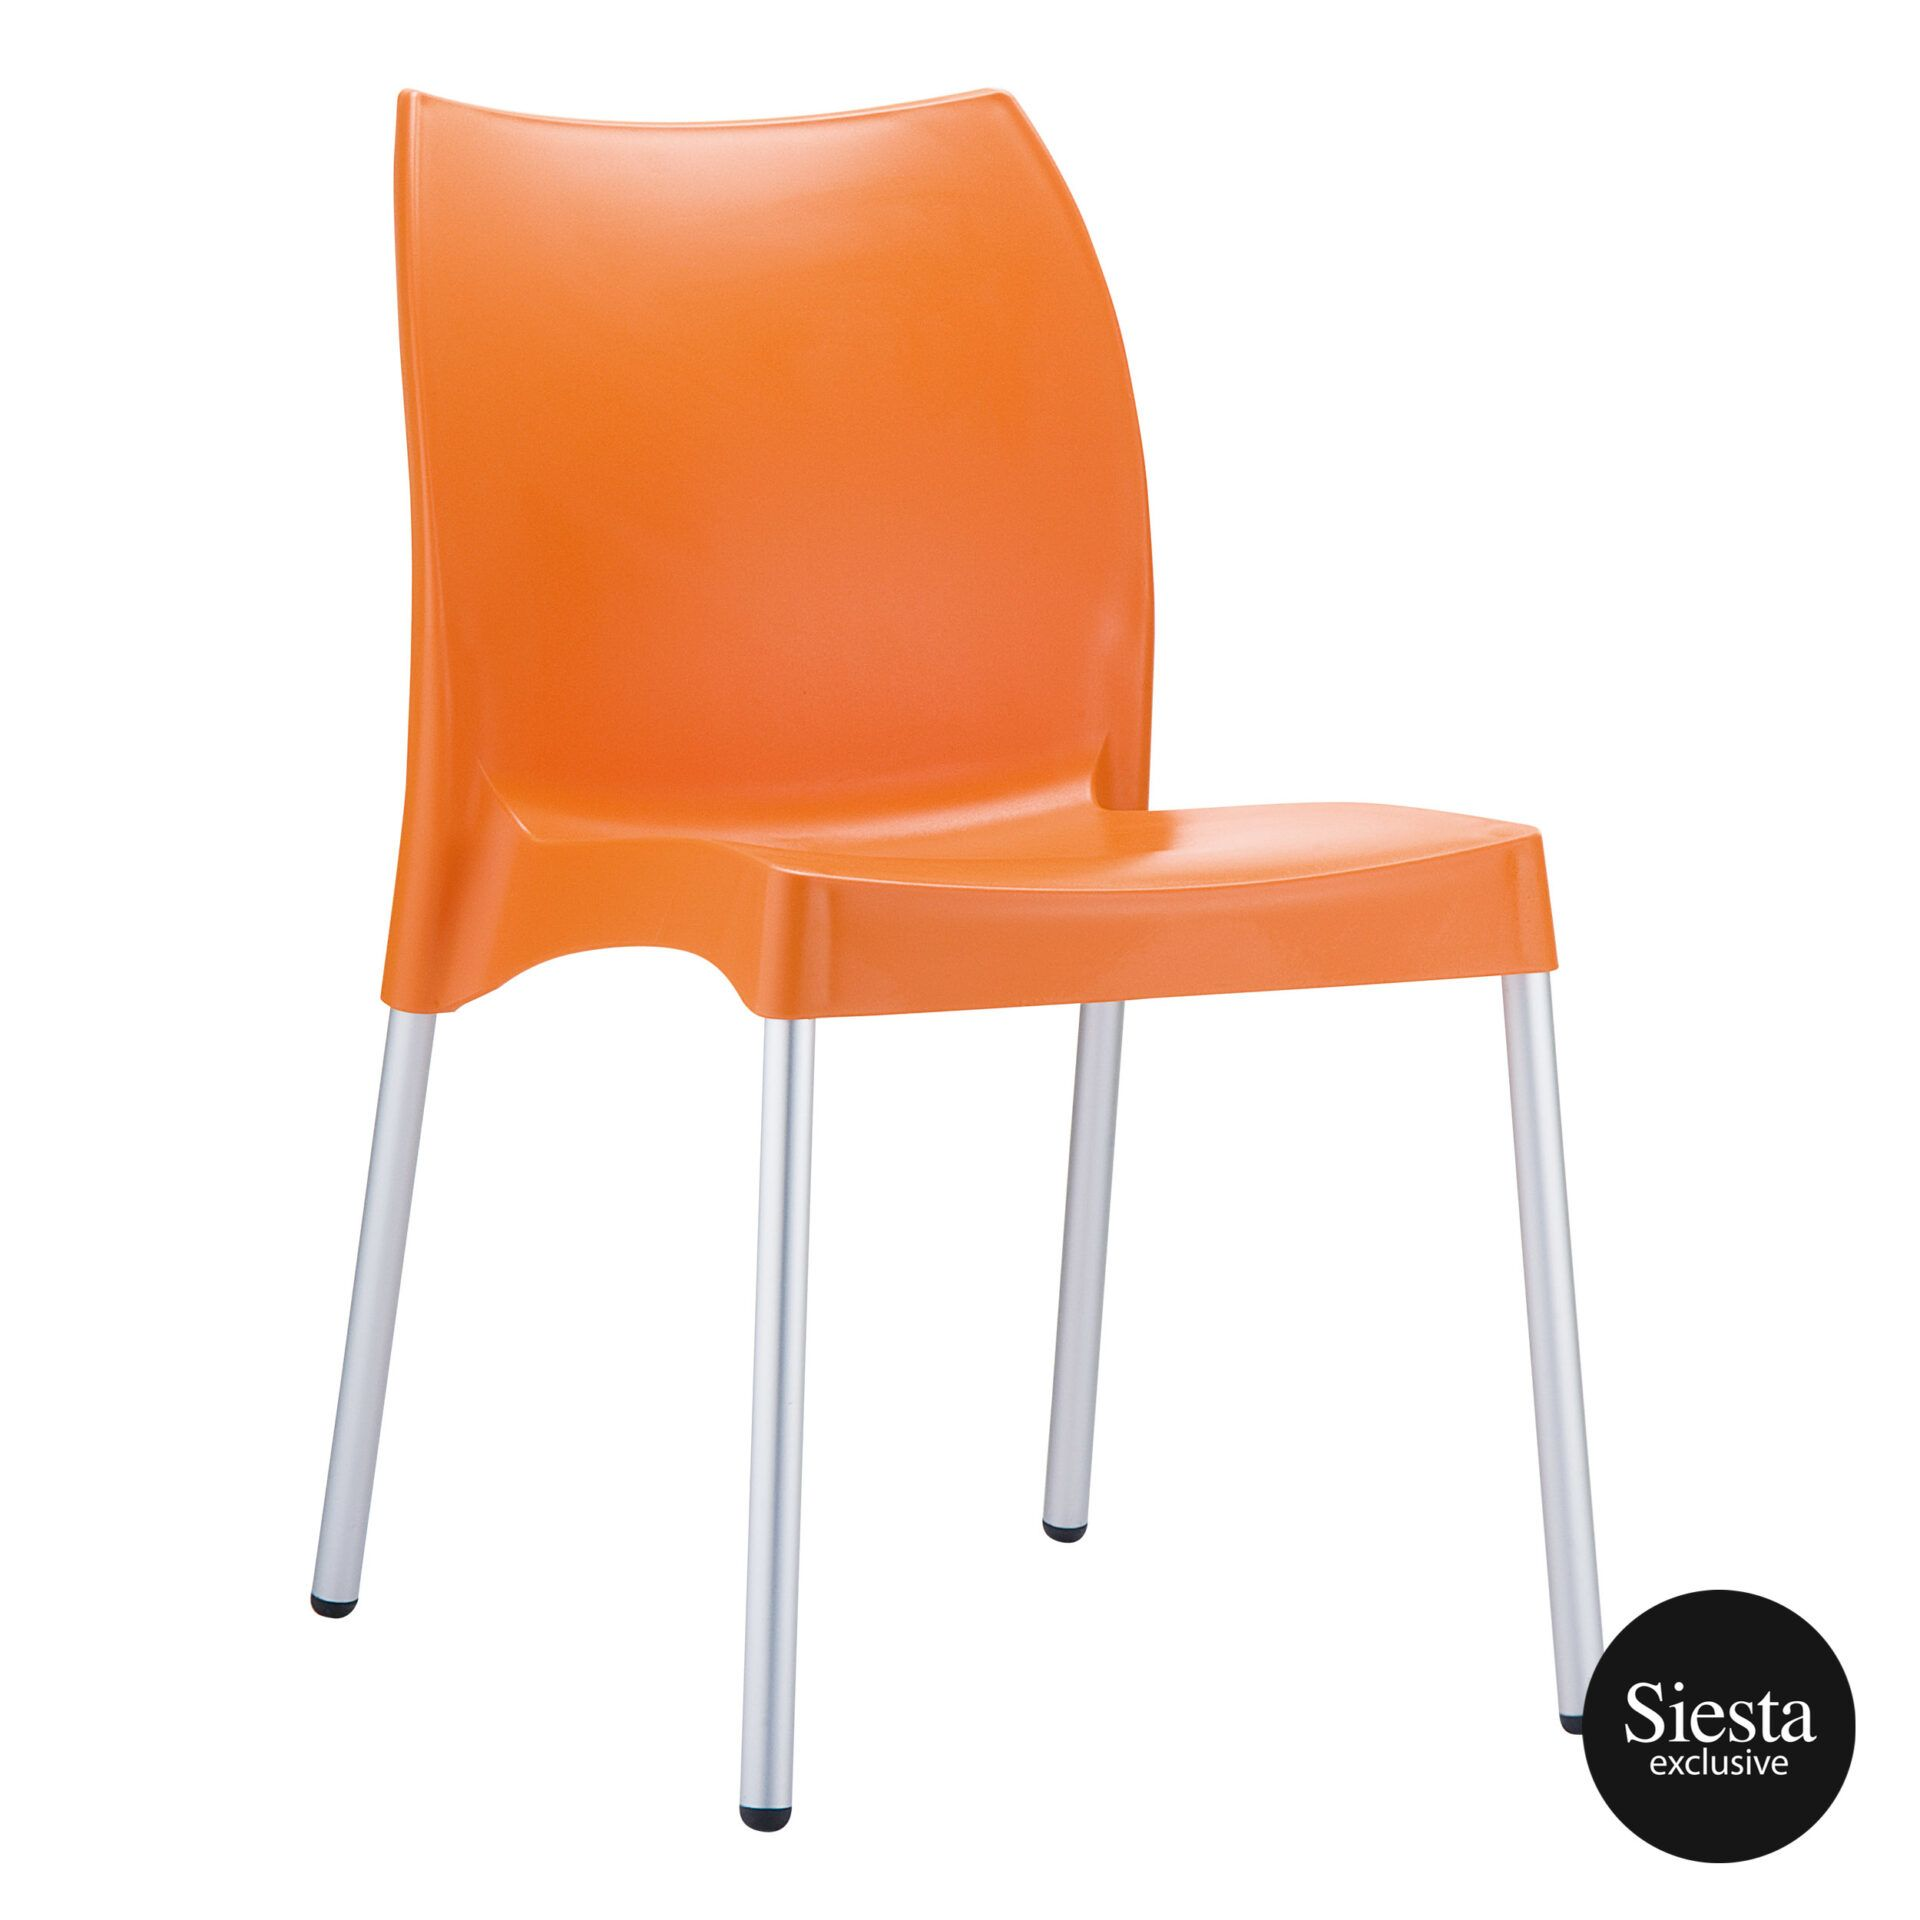 commercial outdoor hospitality seating vita chair orange front side 1